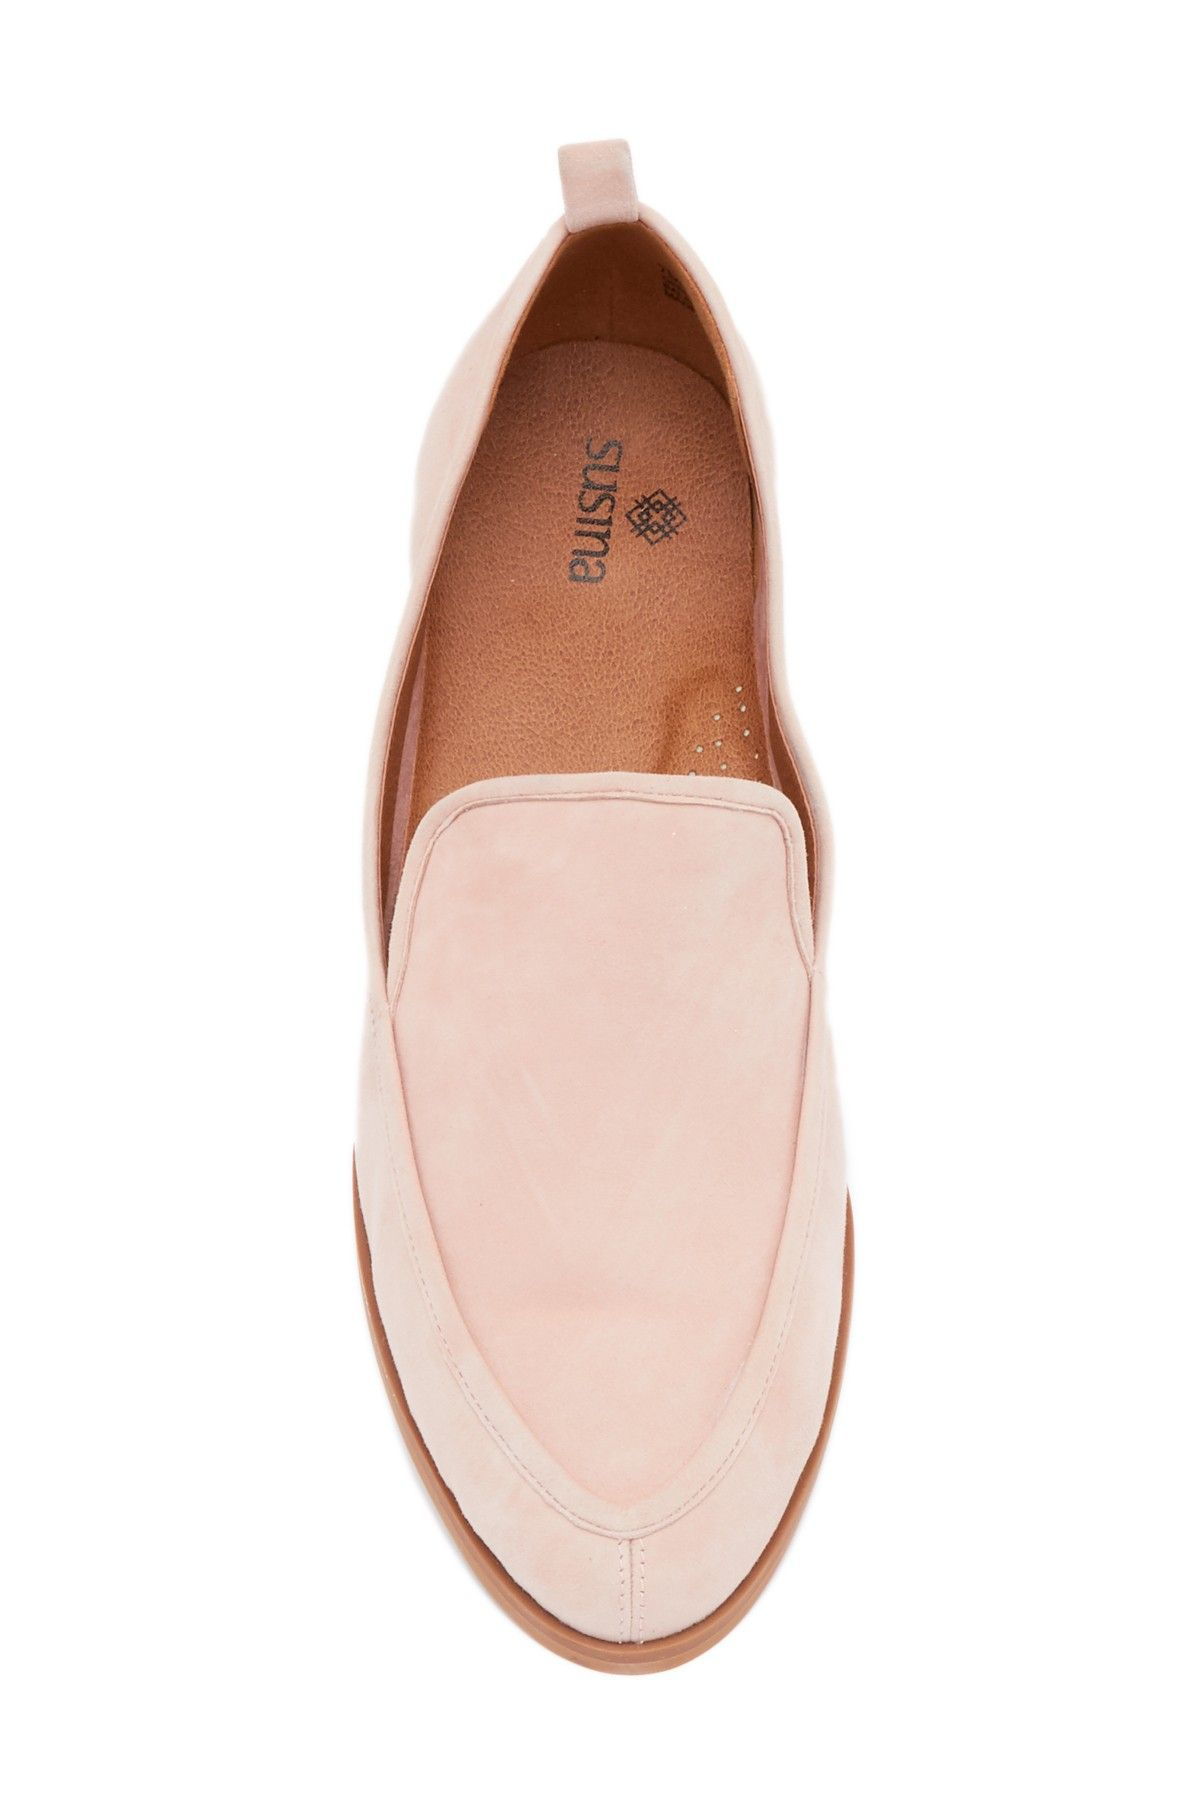 fe1c4b0a301 SUSINA - Kellen Almond Toe Loafer - Wide Width Available. Free Shipping on  orders over  100.